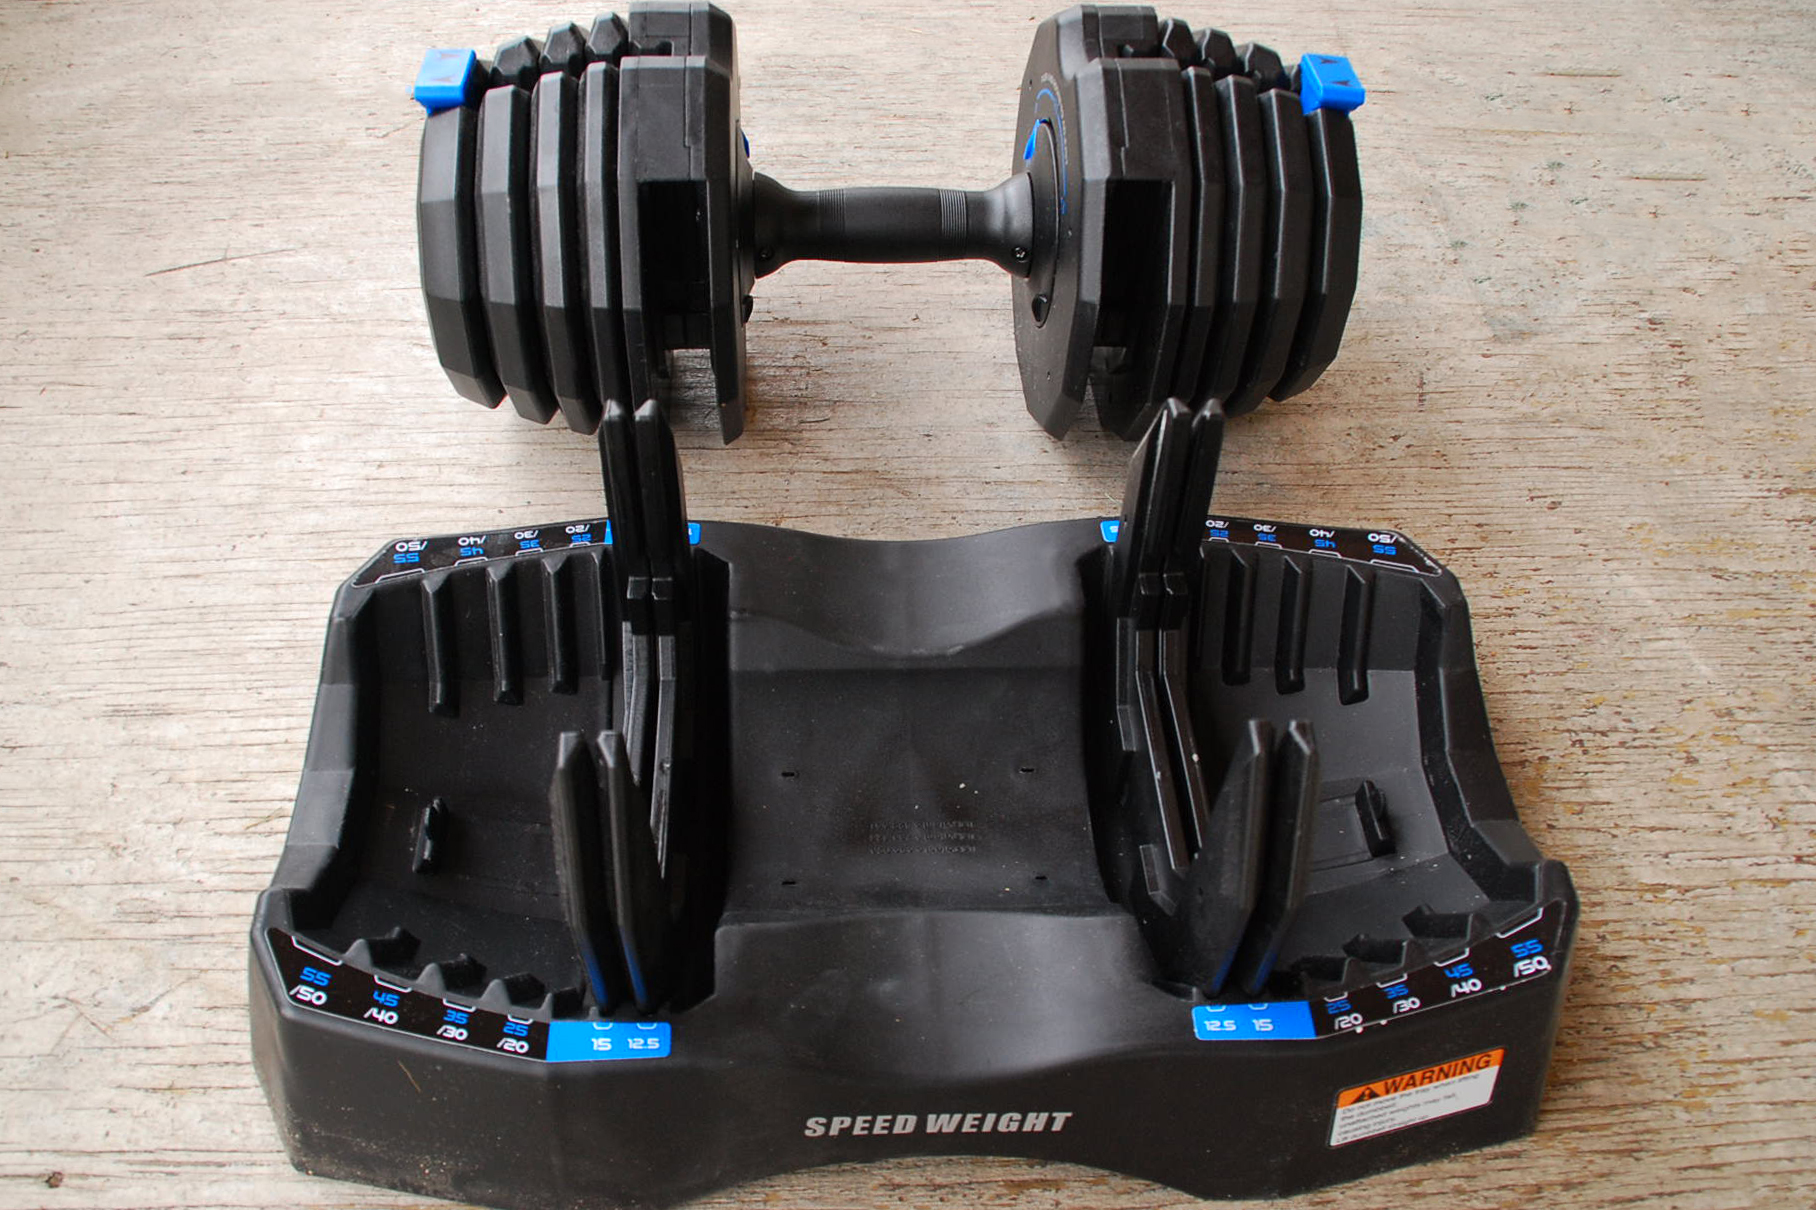 1b108a10099 NordicTrack Does Dumbbells  Select-A-Weight Review